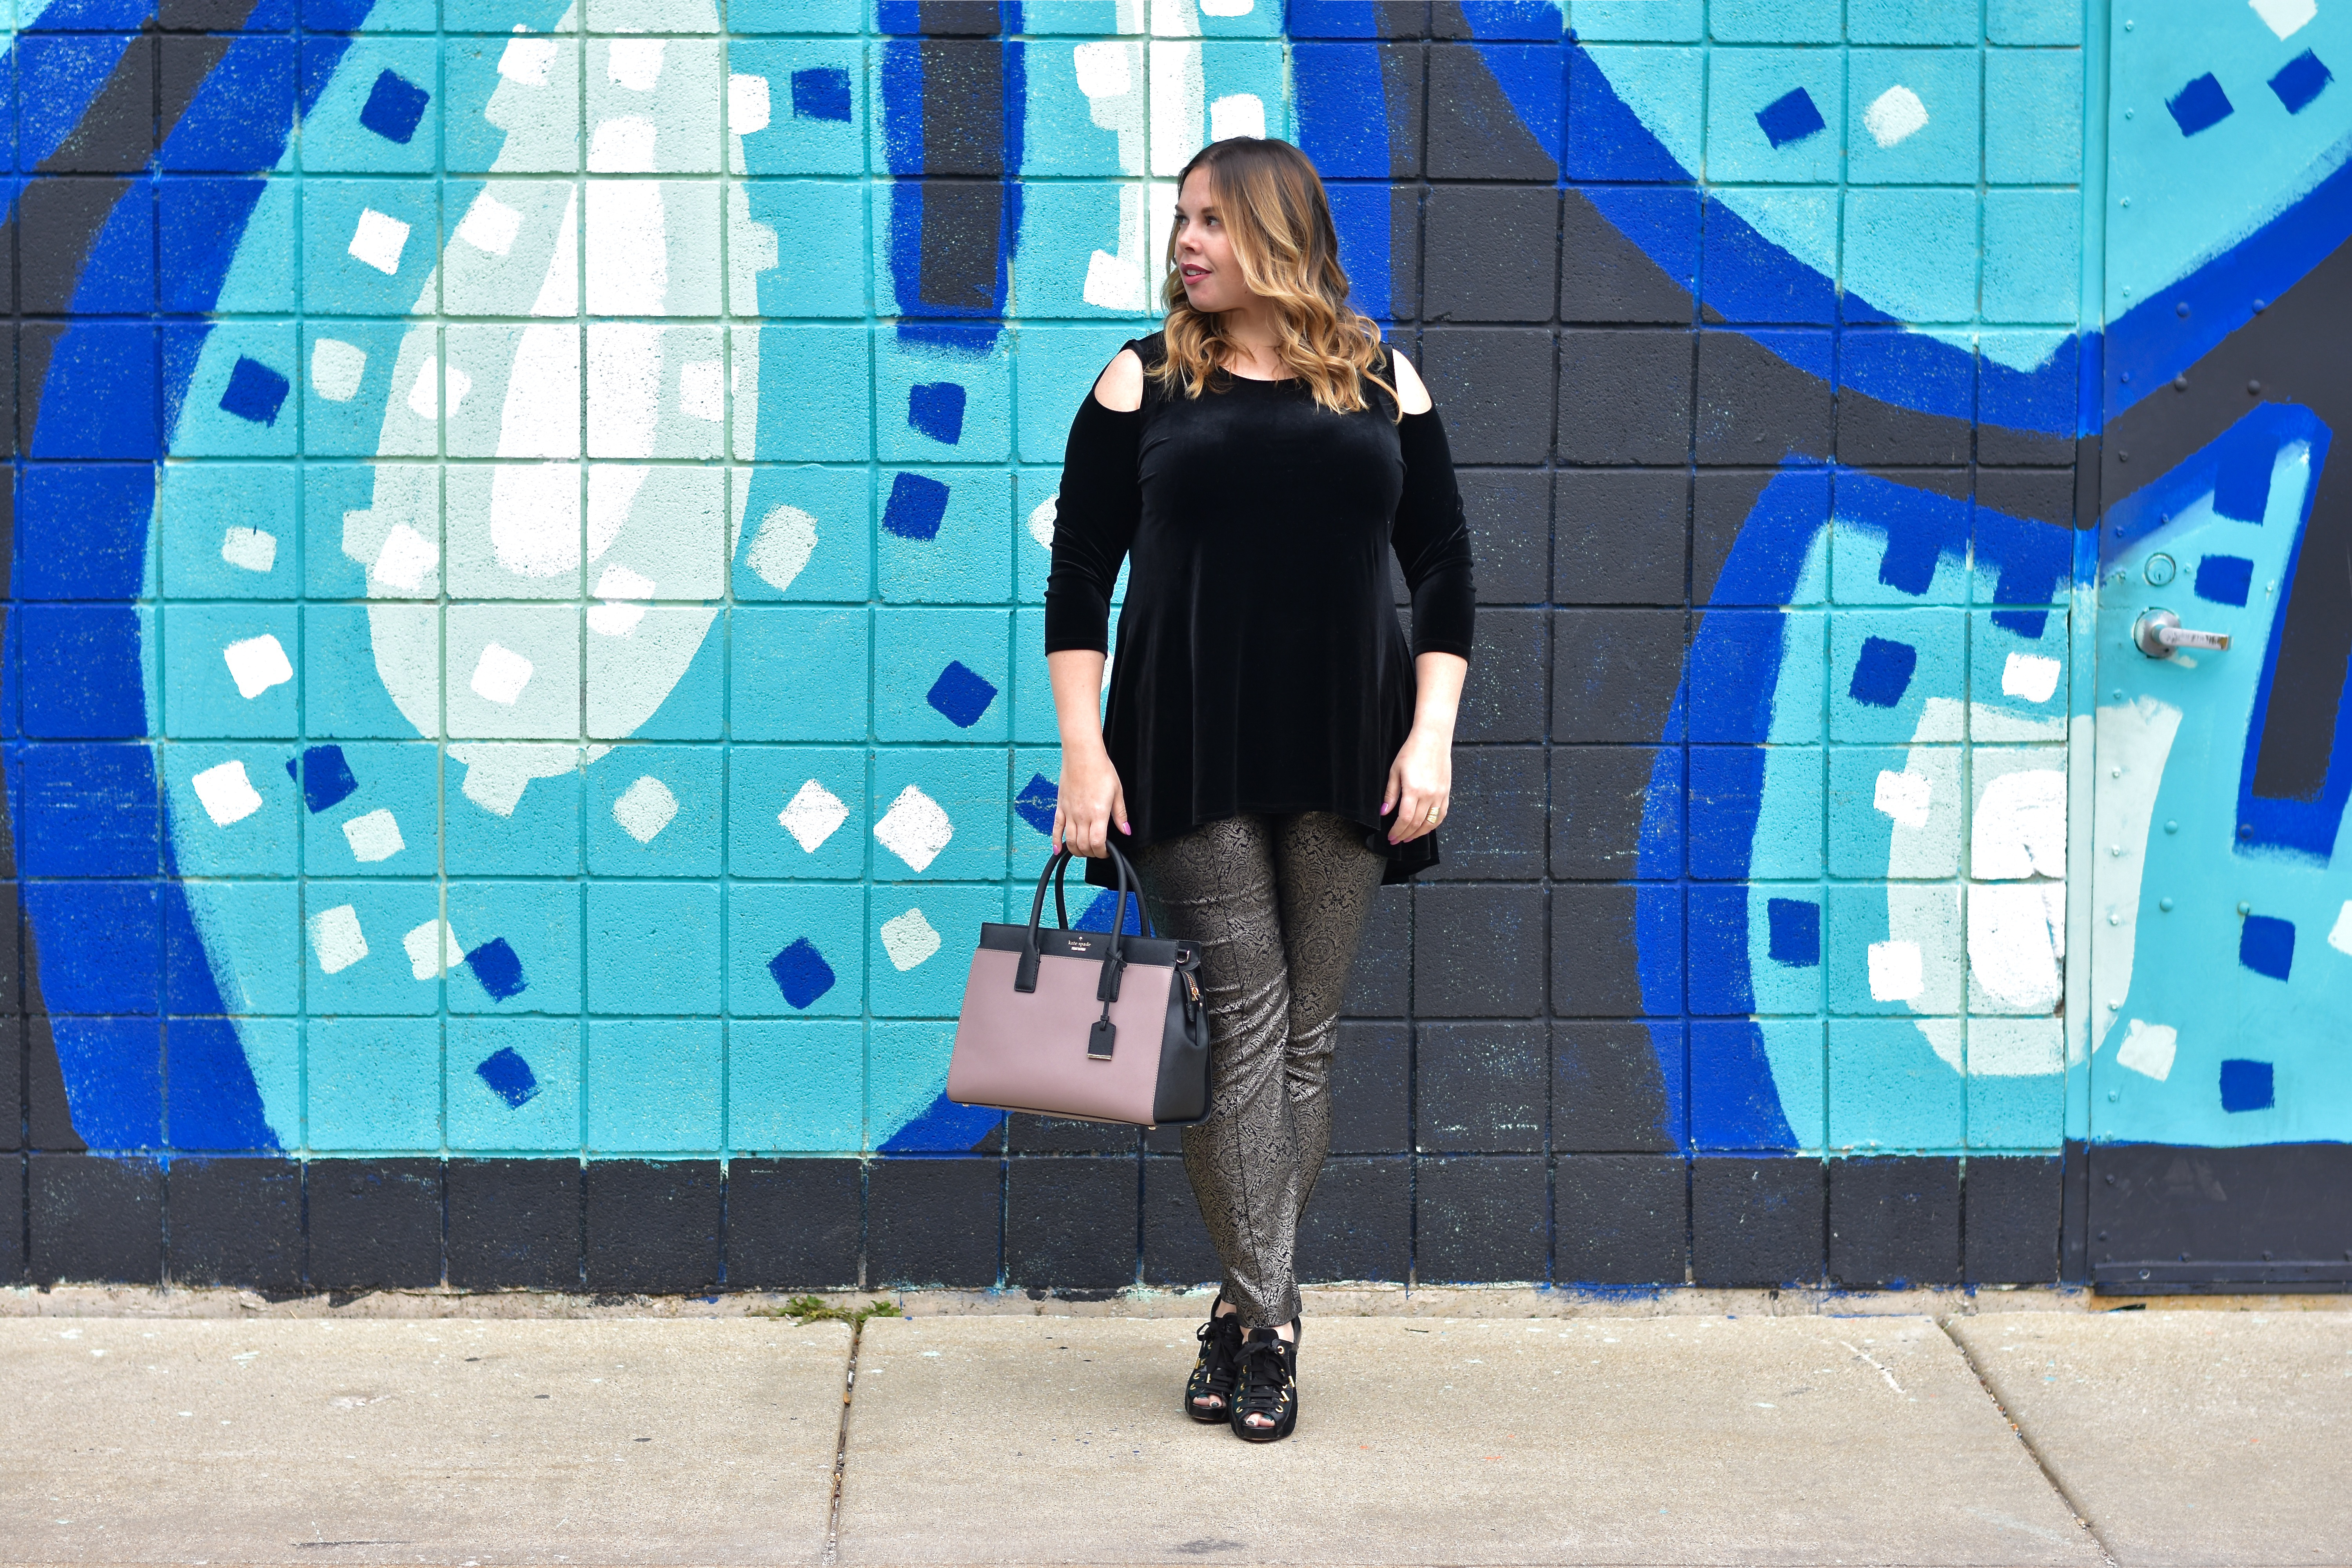 workwear wednesday: holiday party